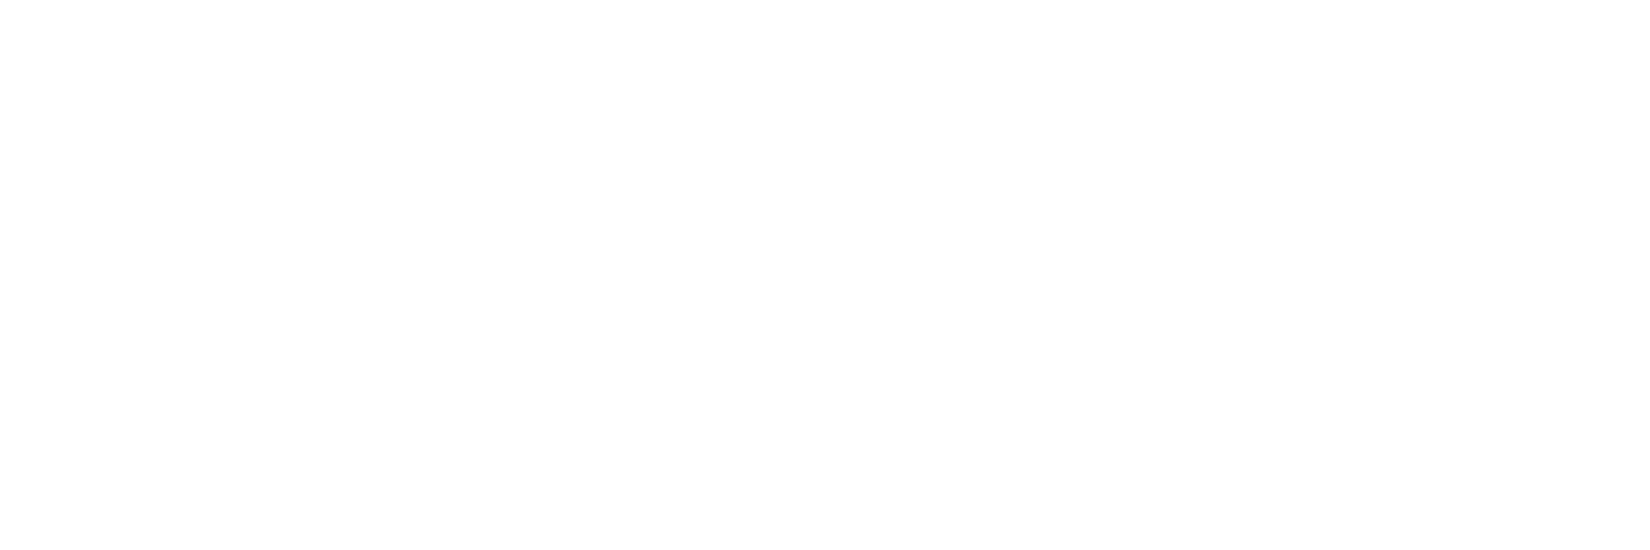 Rougarou - A Cajun Legend